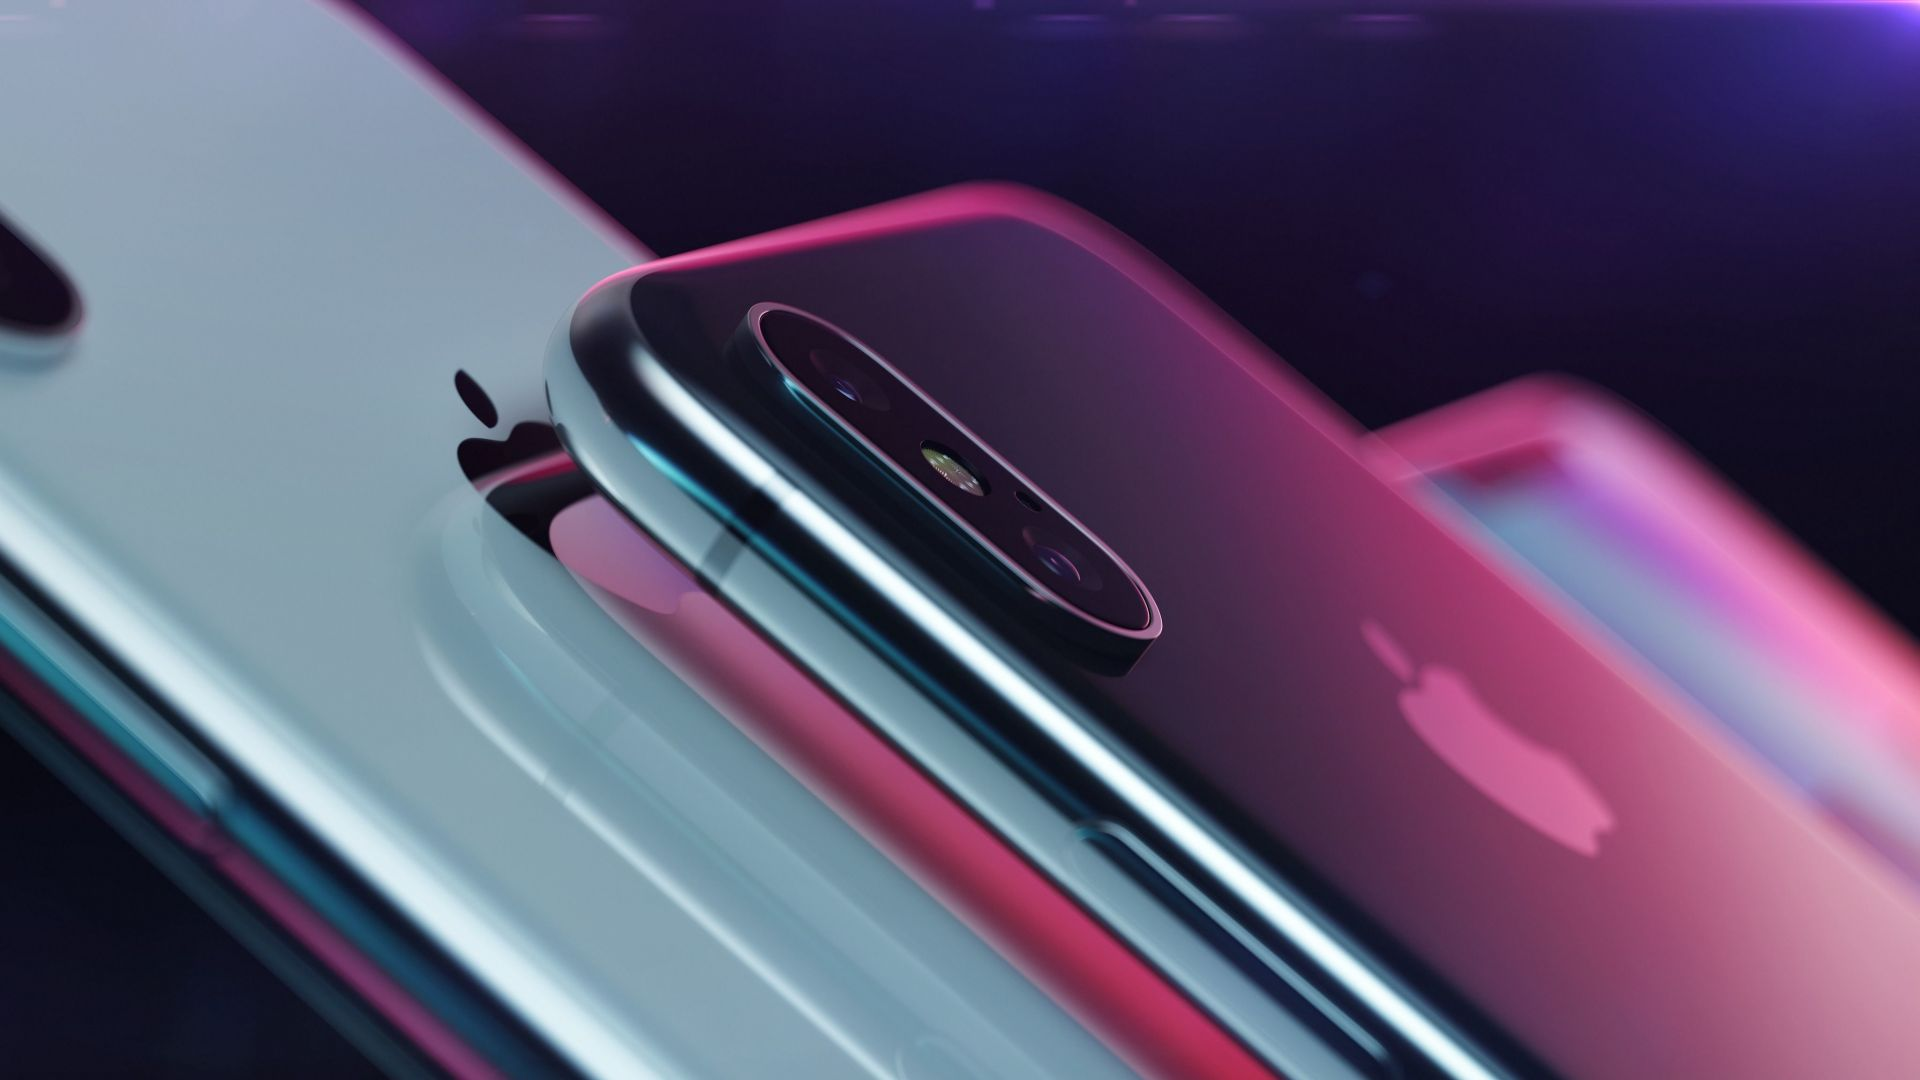 Wallpaper Iphone X 4k 3d Os 17617 Page 2